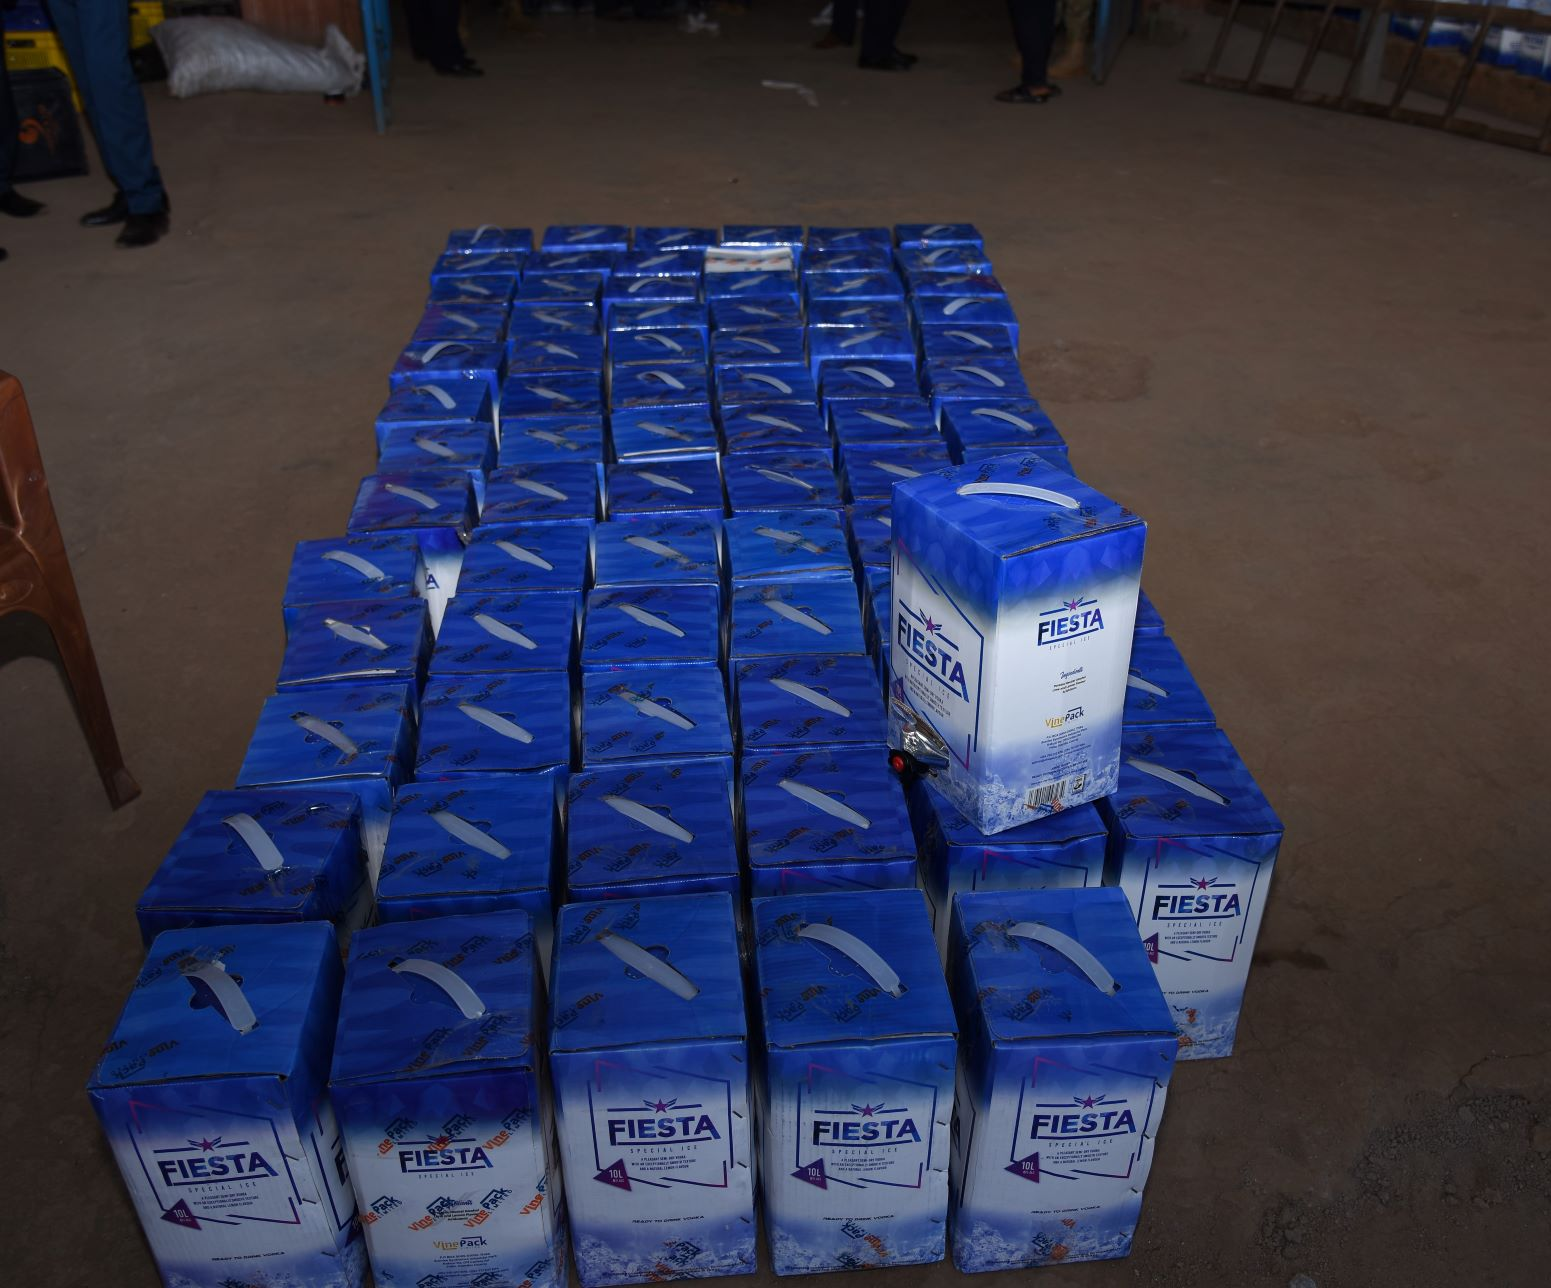 KRA, seize alcoholic products affixed with counterfeit excise stamps worth Ksh. 12 million